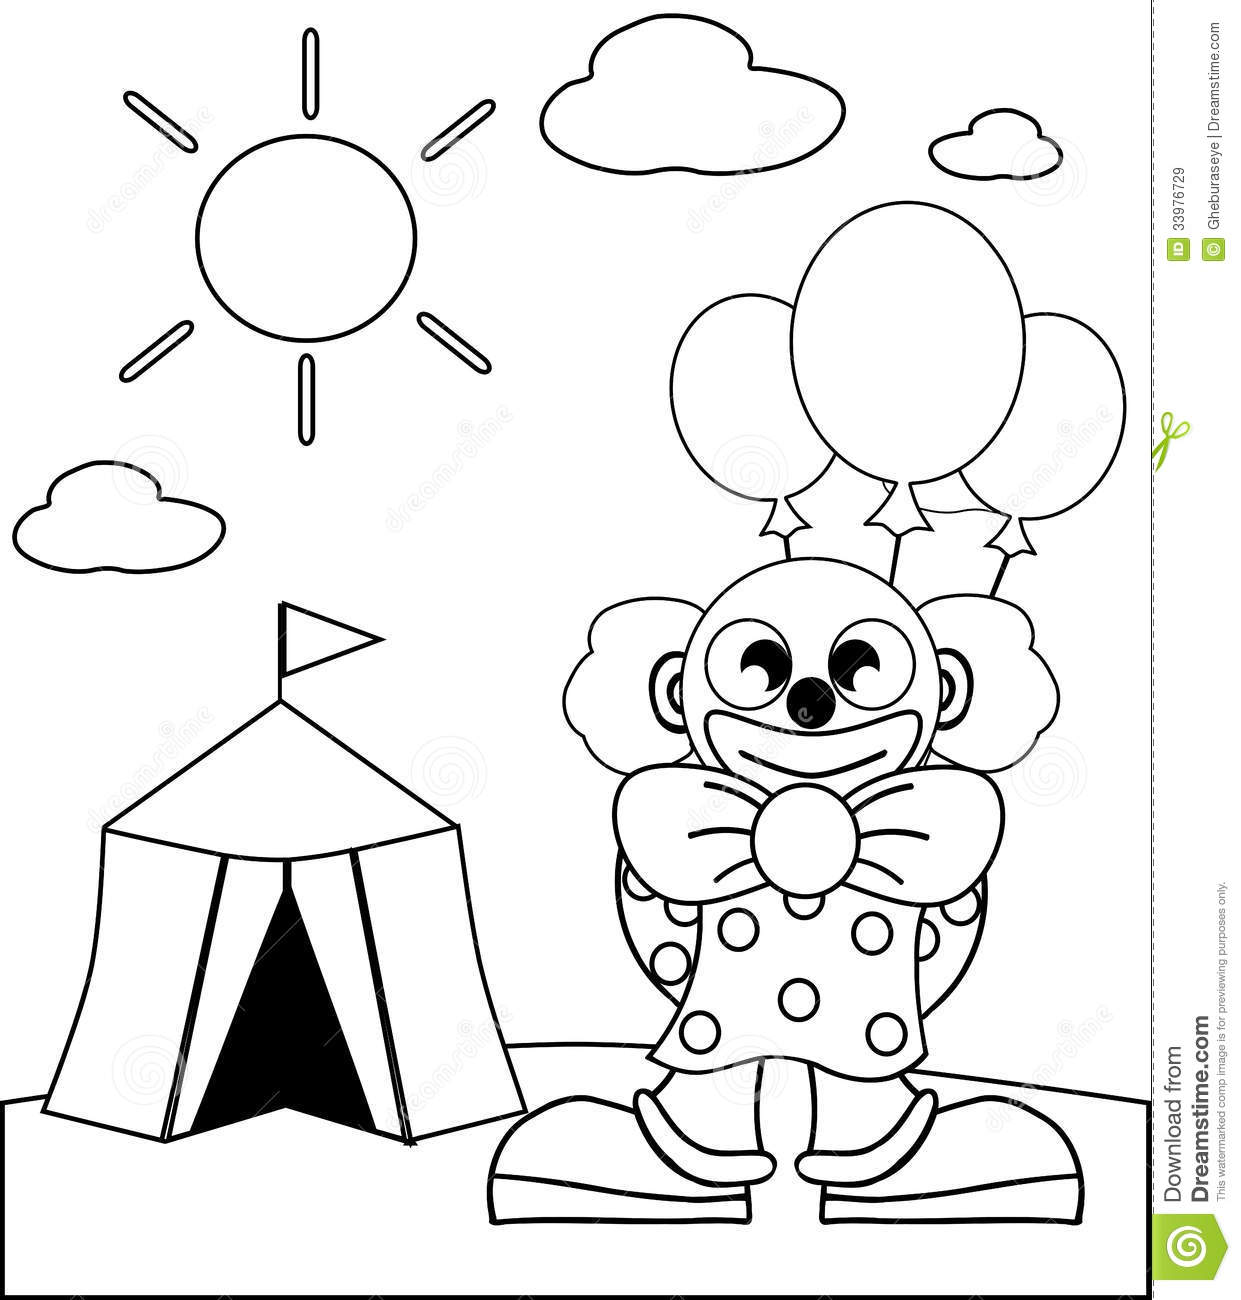 Coloring Clown With Balloons Royalty Free Stock Photo